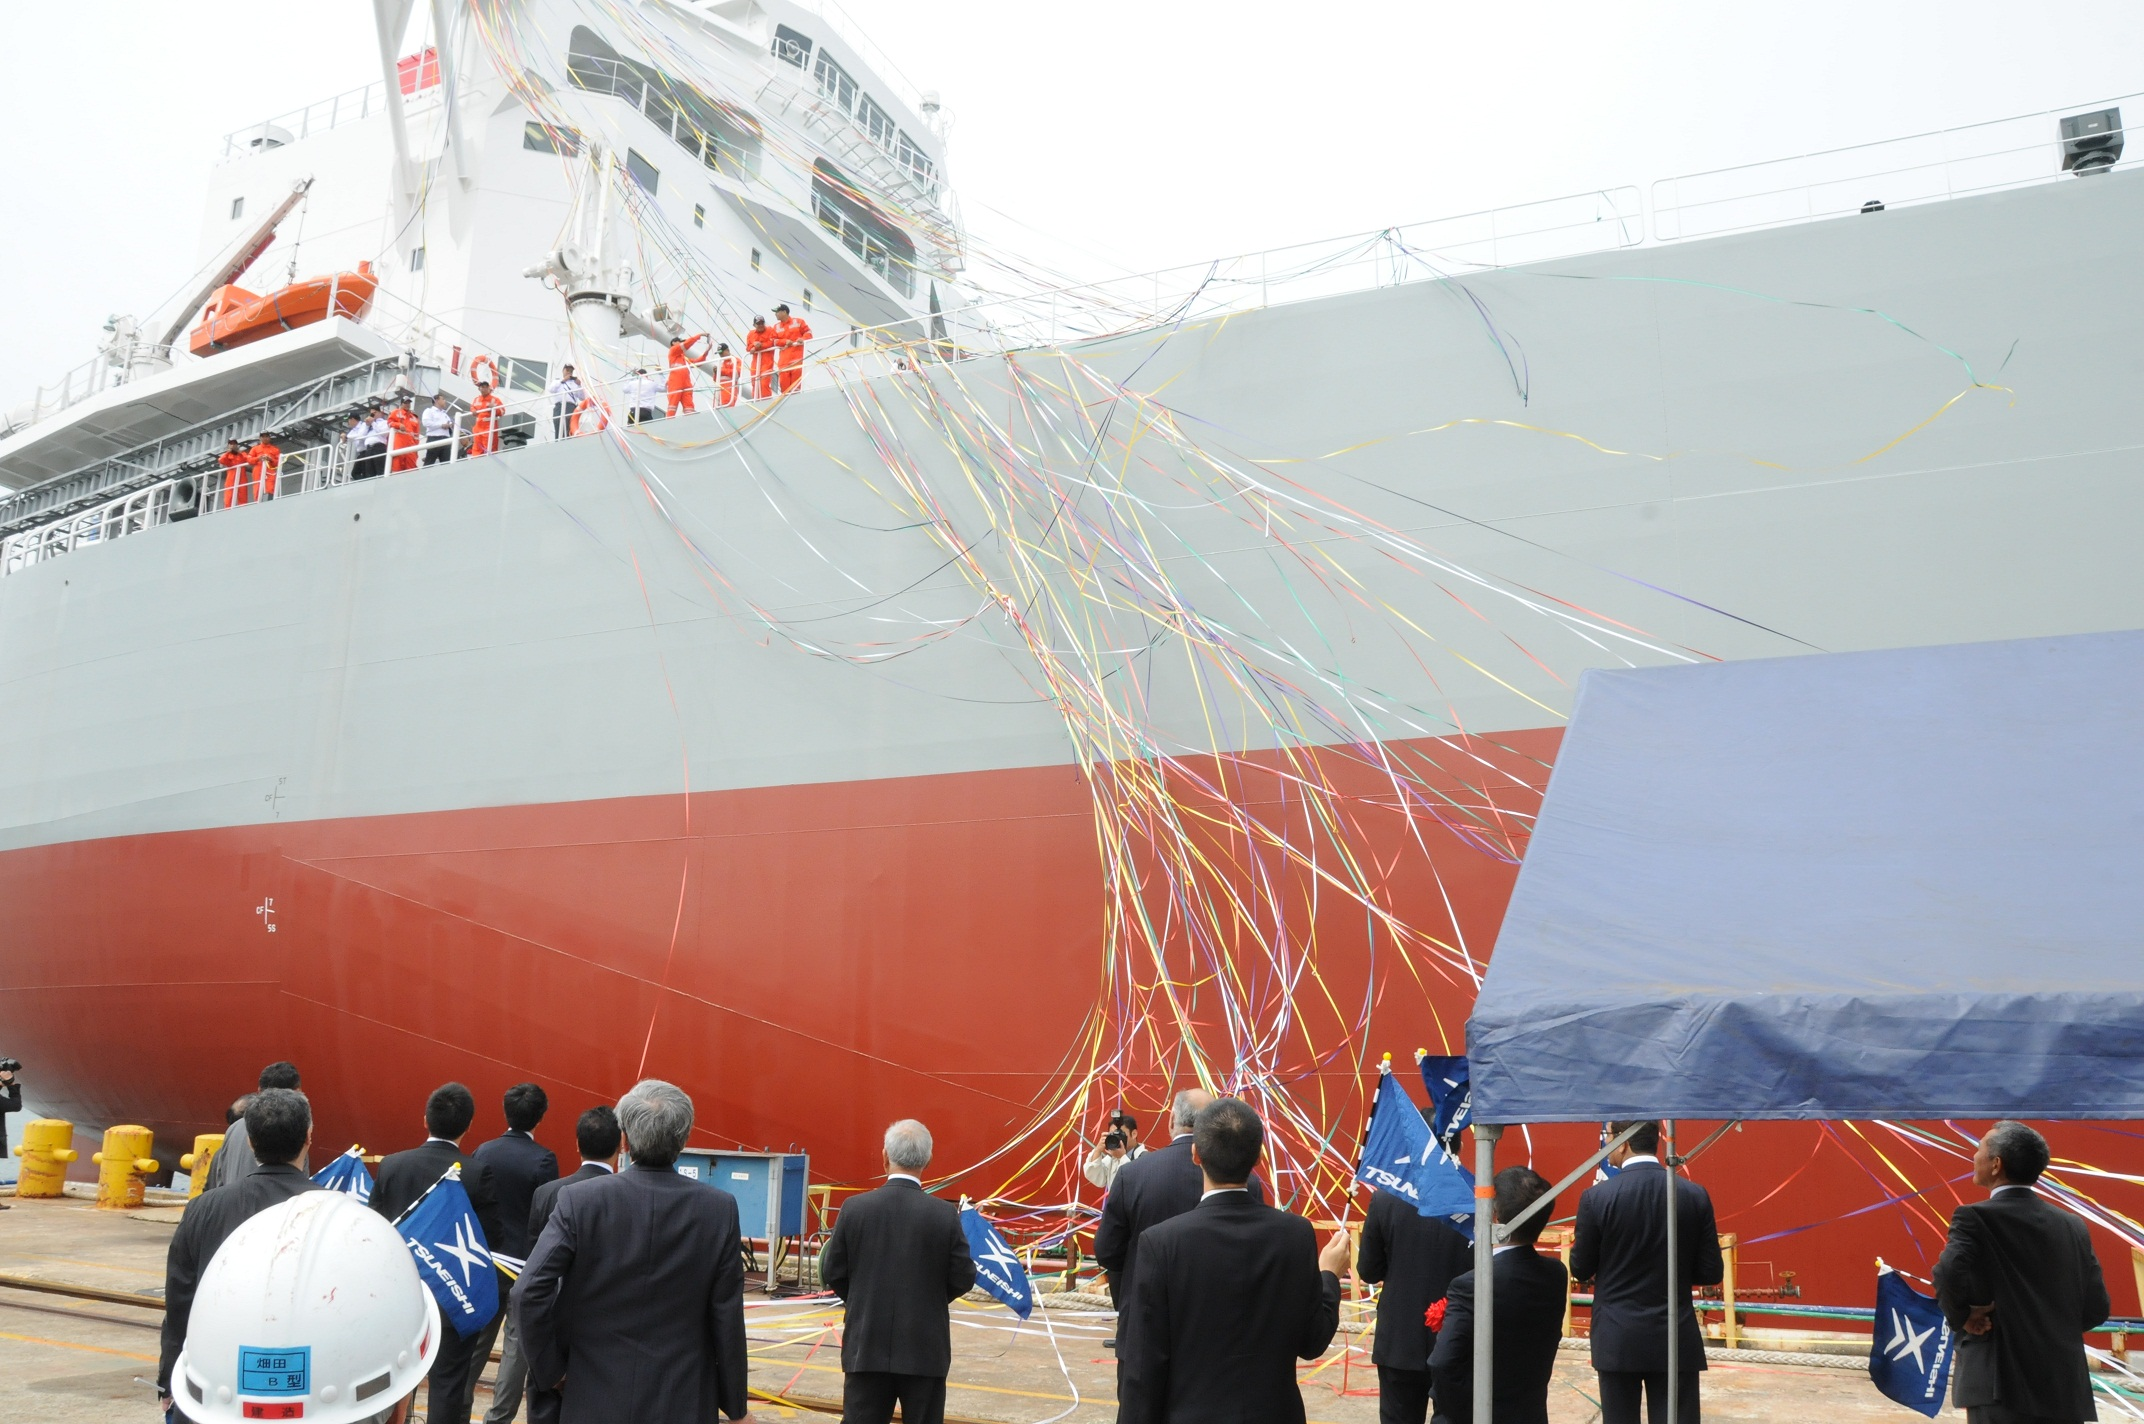 SHINING BLISS′ s Naming Delivery ceremony